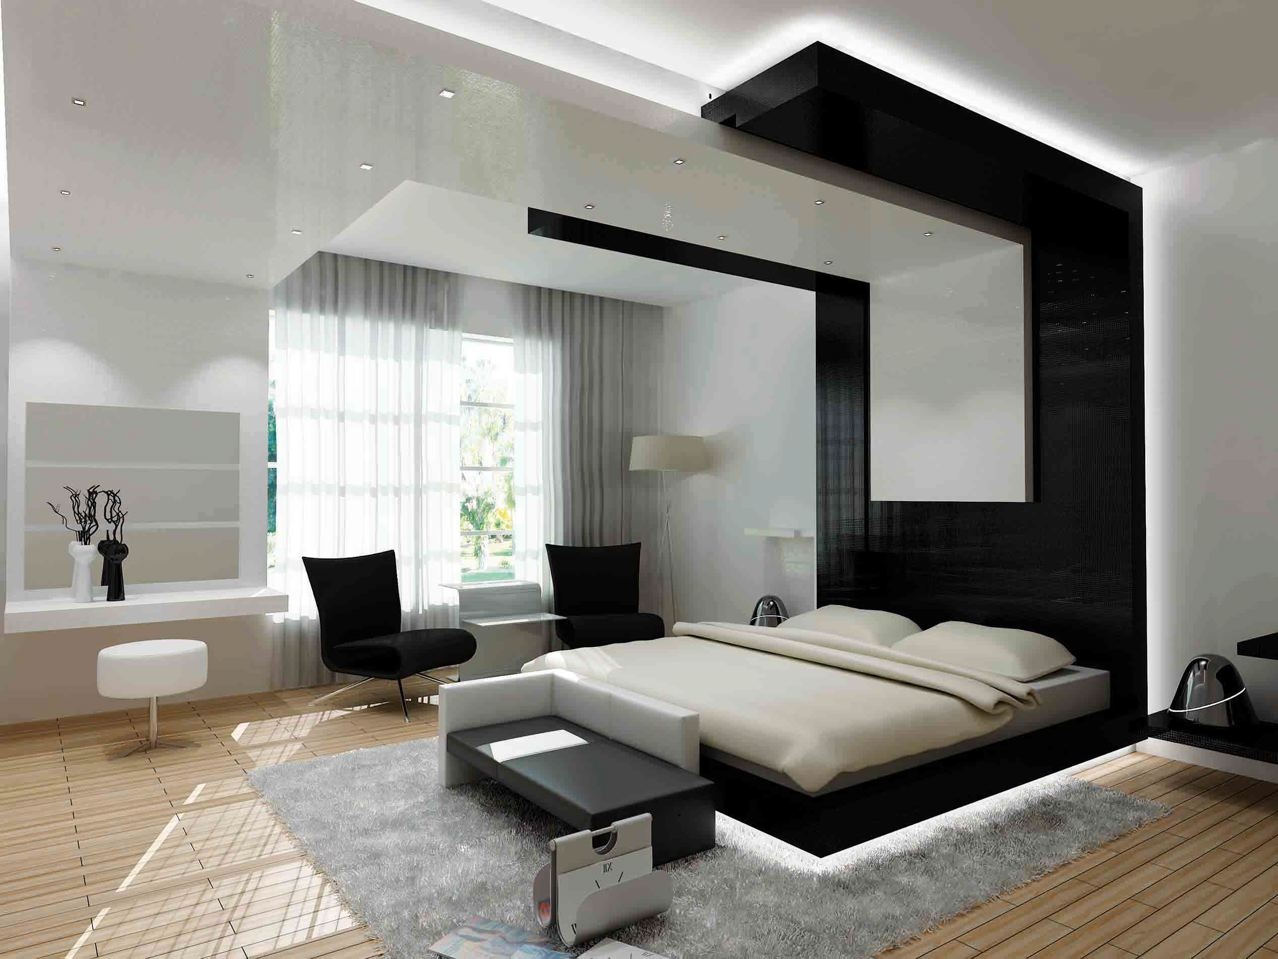 Contemporary bedroom design for your home 11